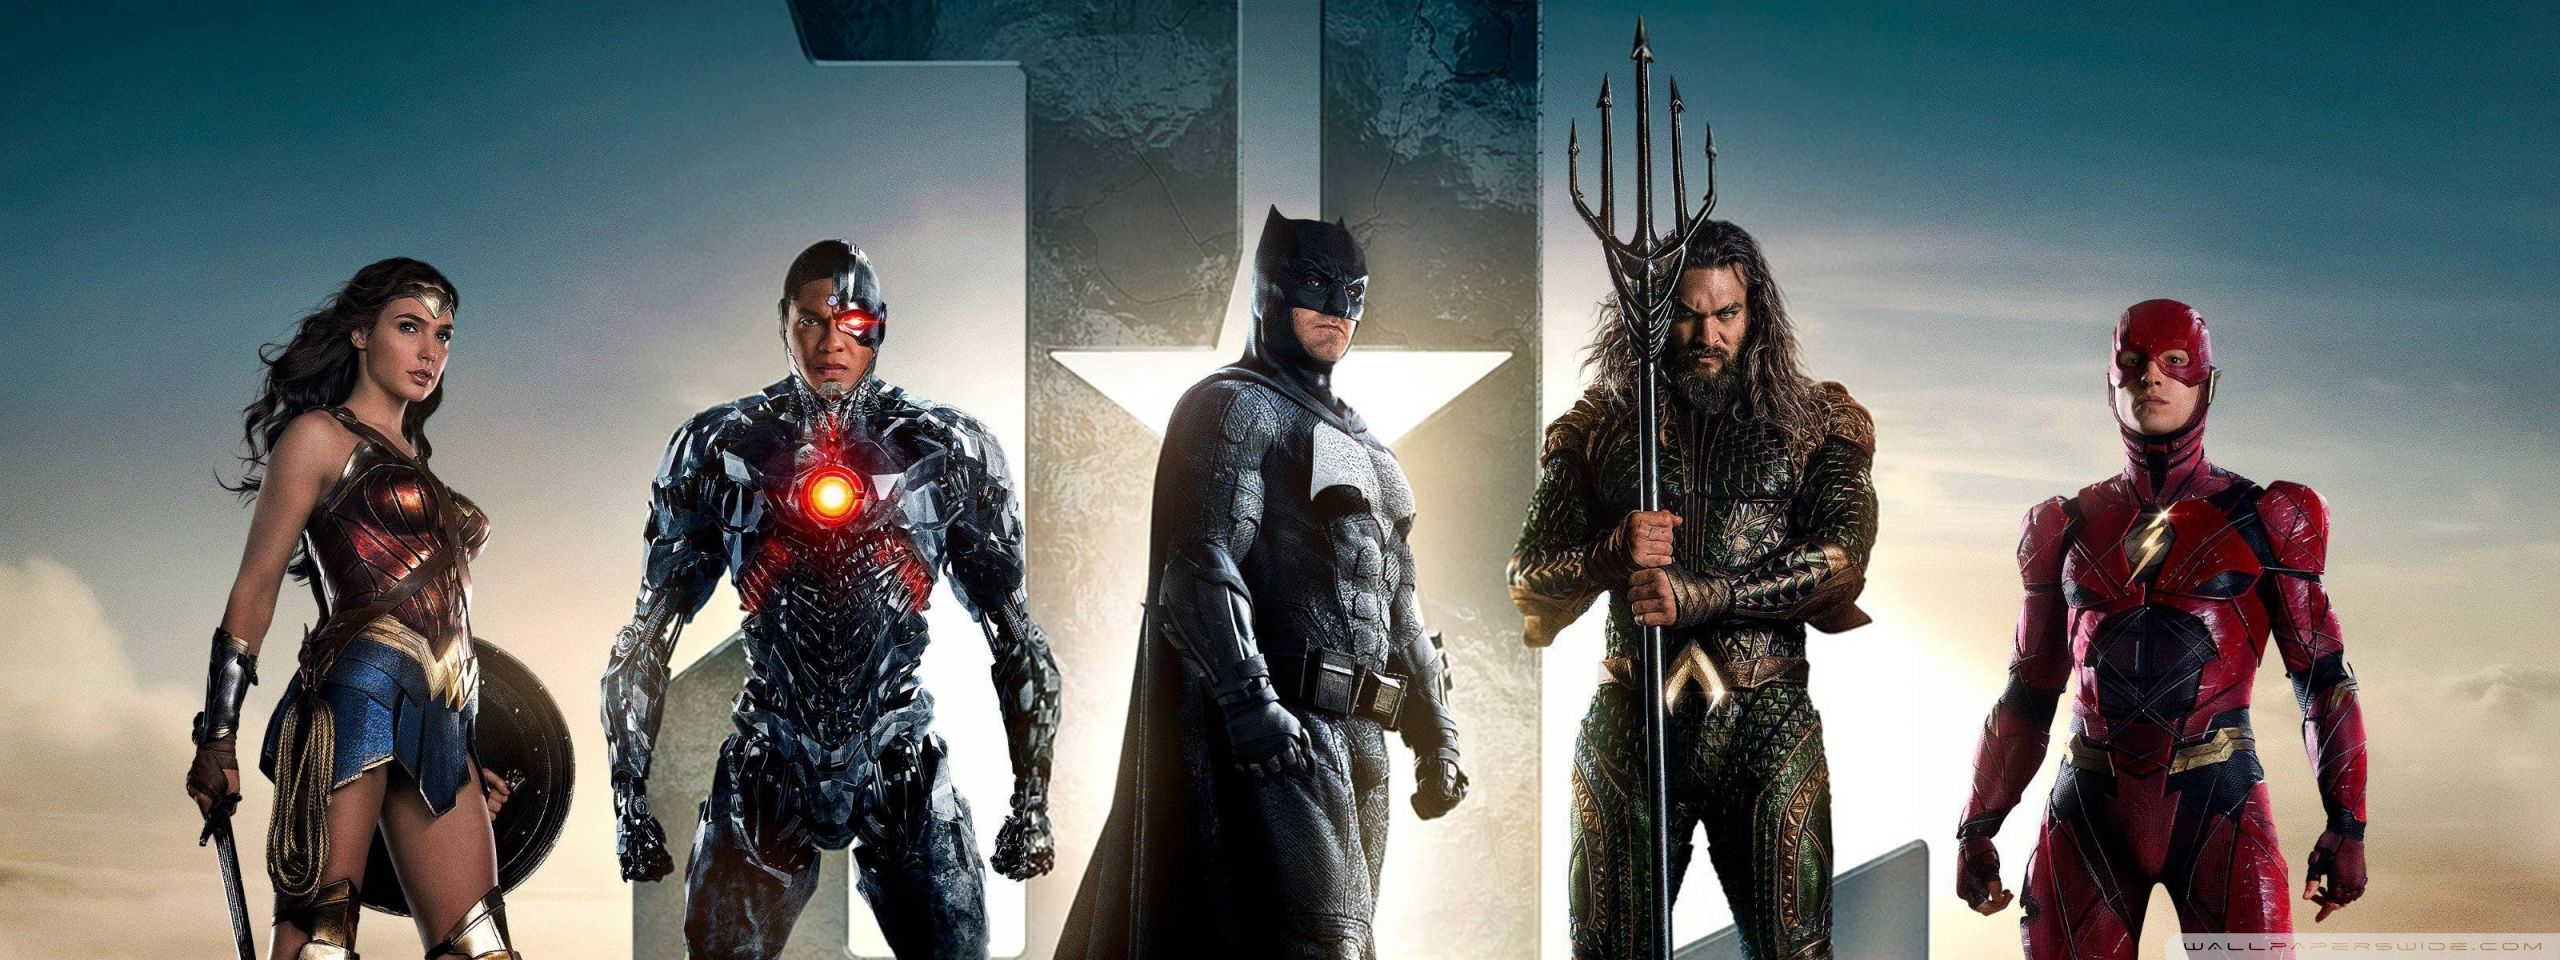 Justice League Dual Monitor Wallpapers Top Free Justice League